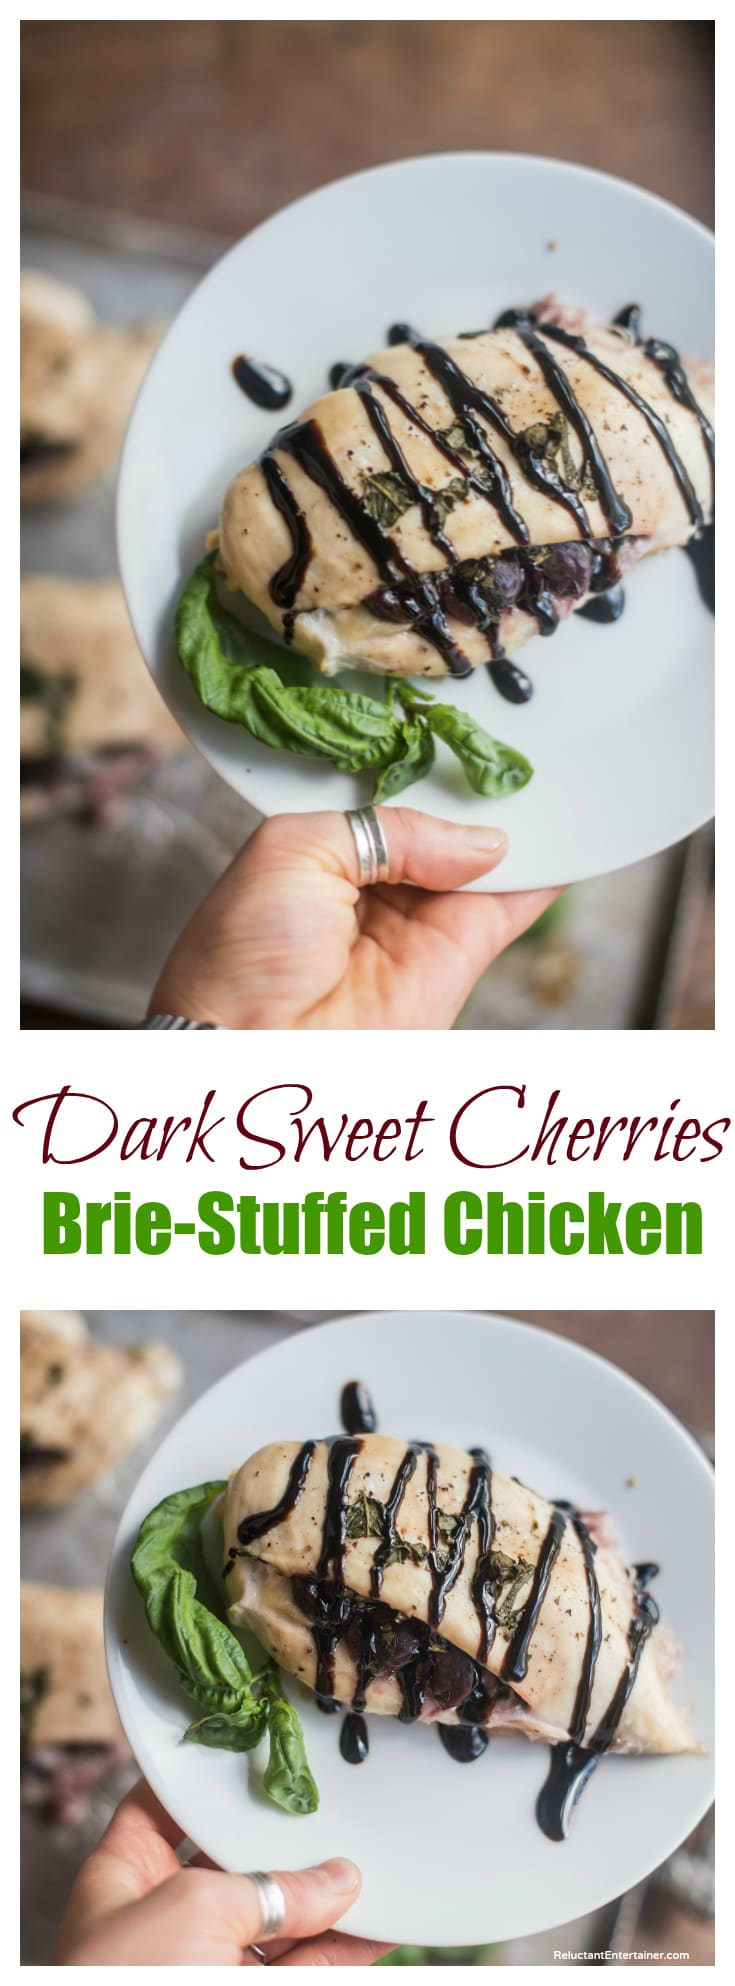 Dark Sweet Cherries Brie-Stuffed Chicken